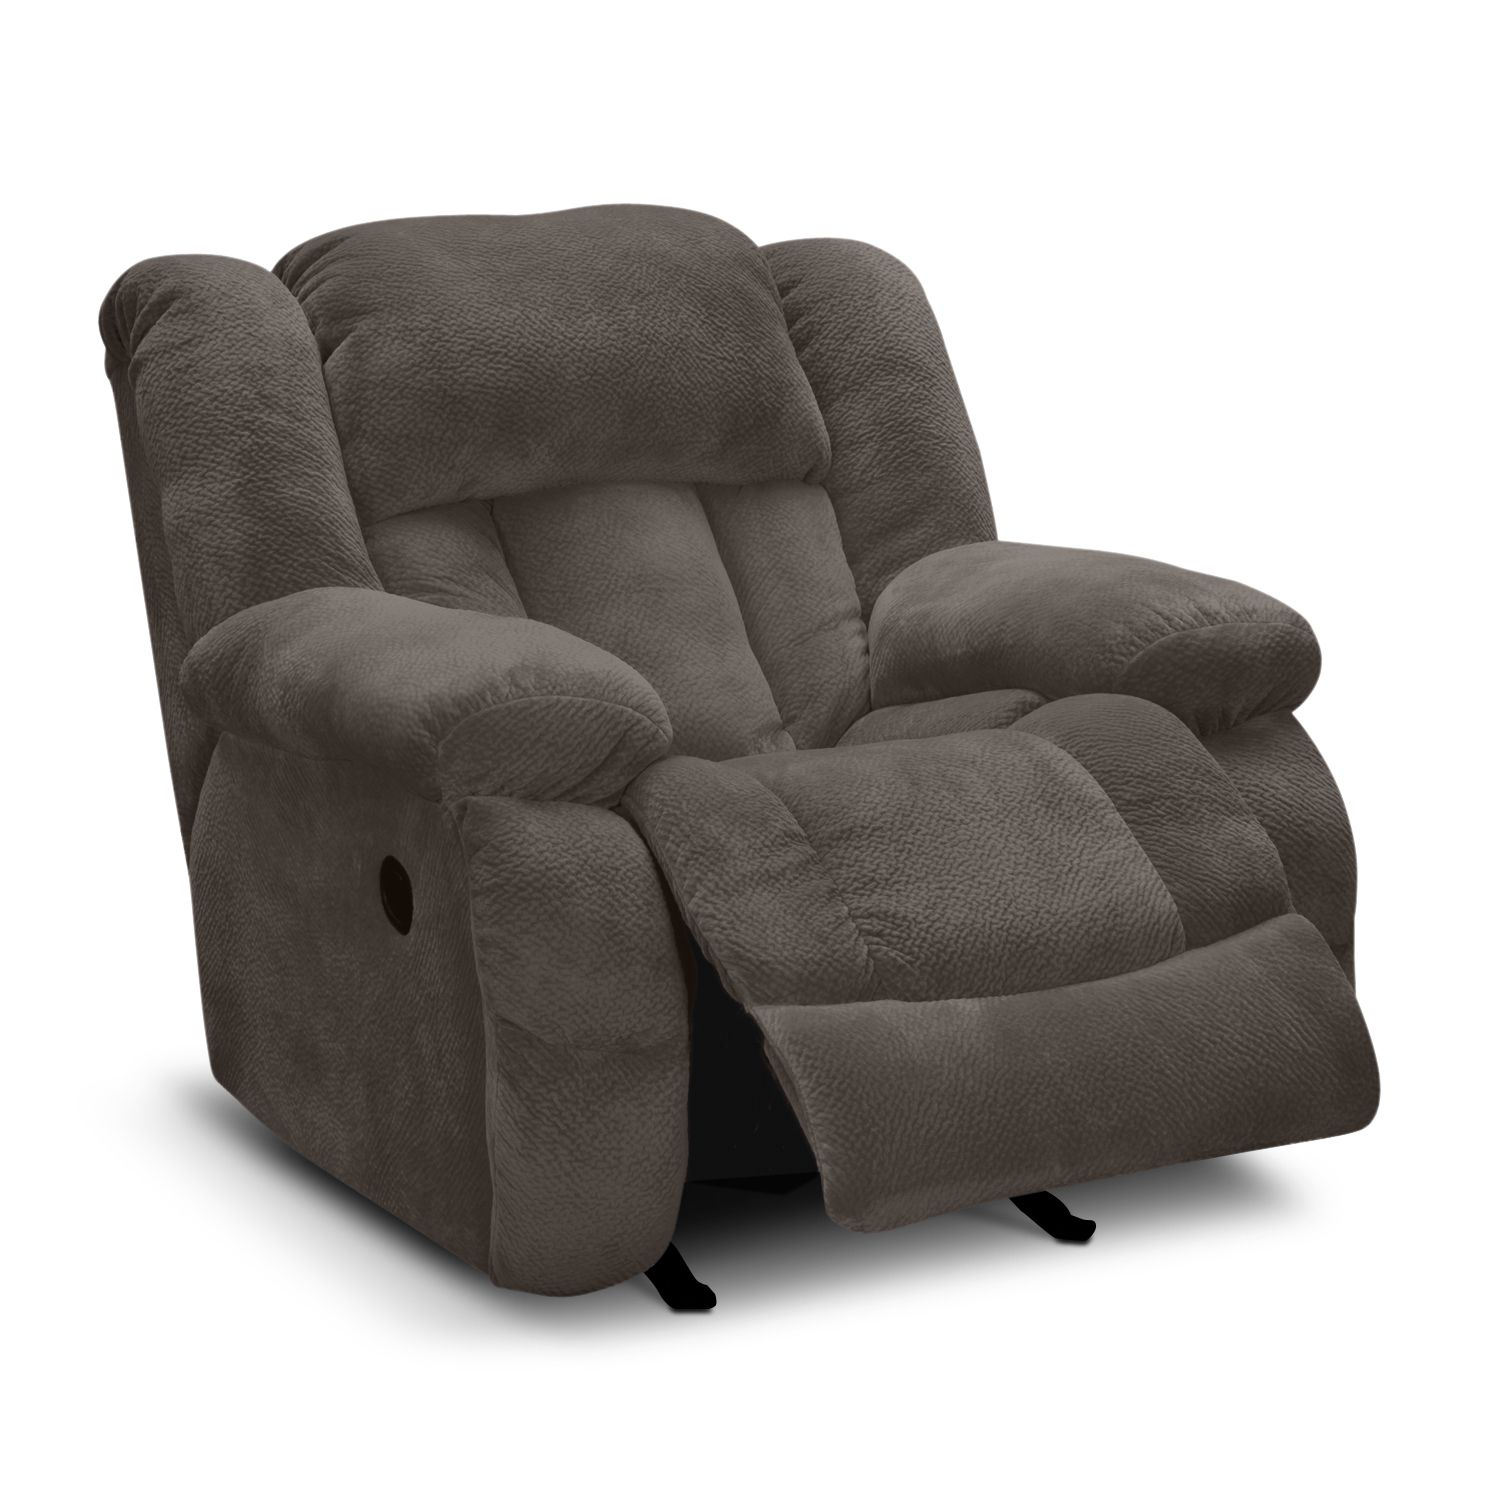 Vcfcontest Park City Glider Recliner | Value City Furniture Throughout Katrina Beige Swivel Glider Chairs (Photo 15 of 20)